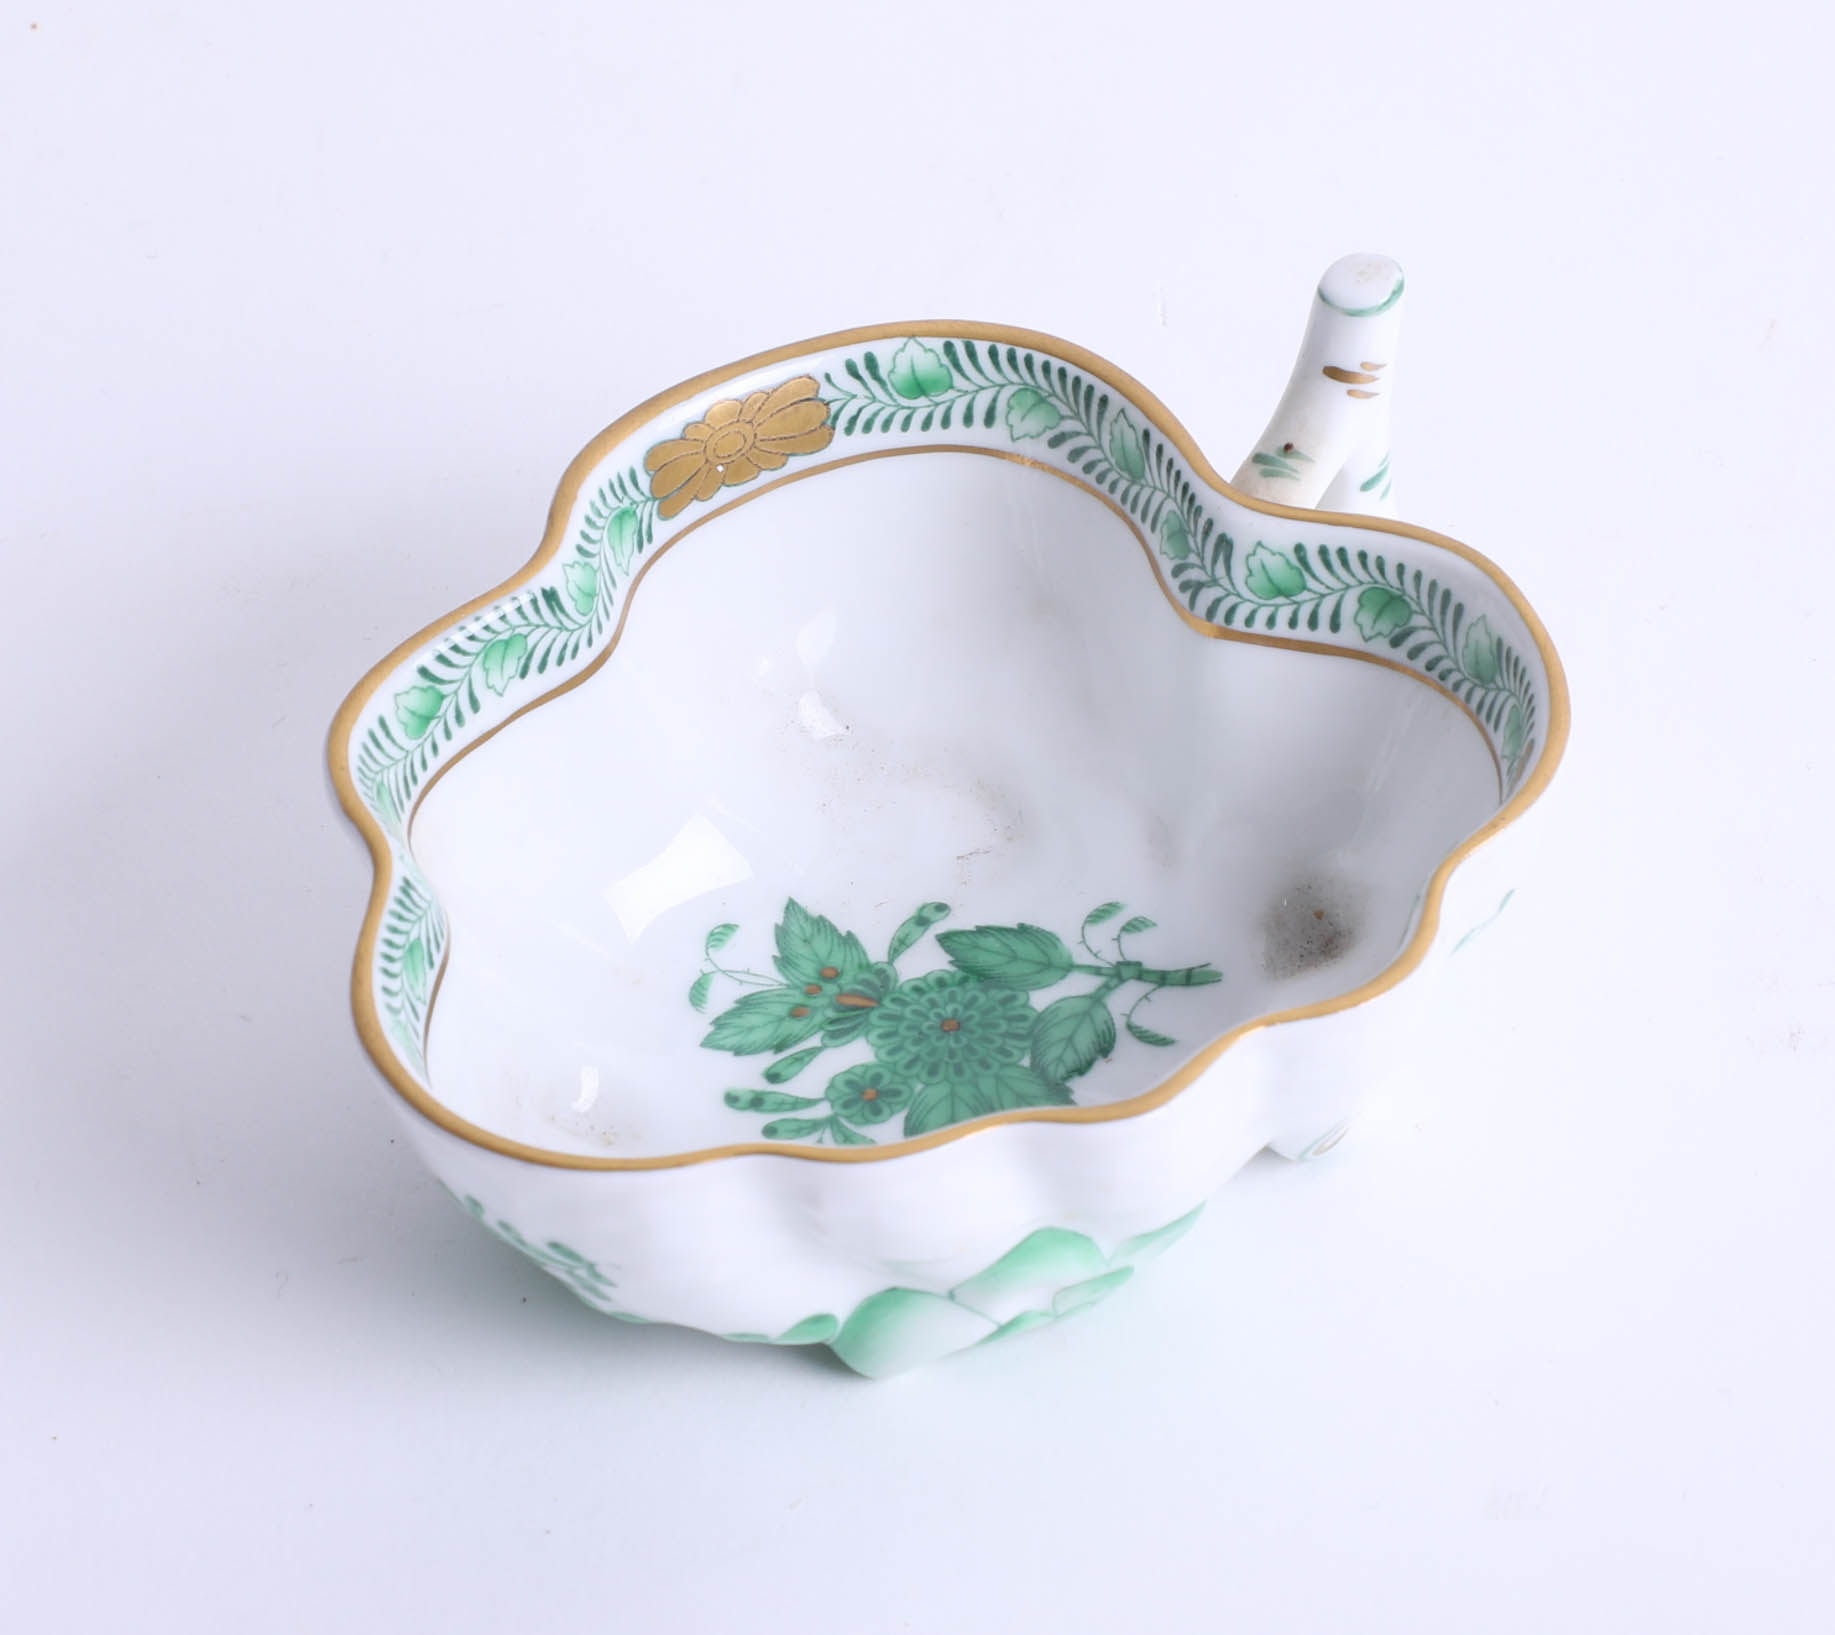 Lot 026 - A Herend, Hungarian hand painted porcelain leaf dish.